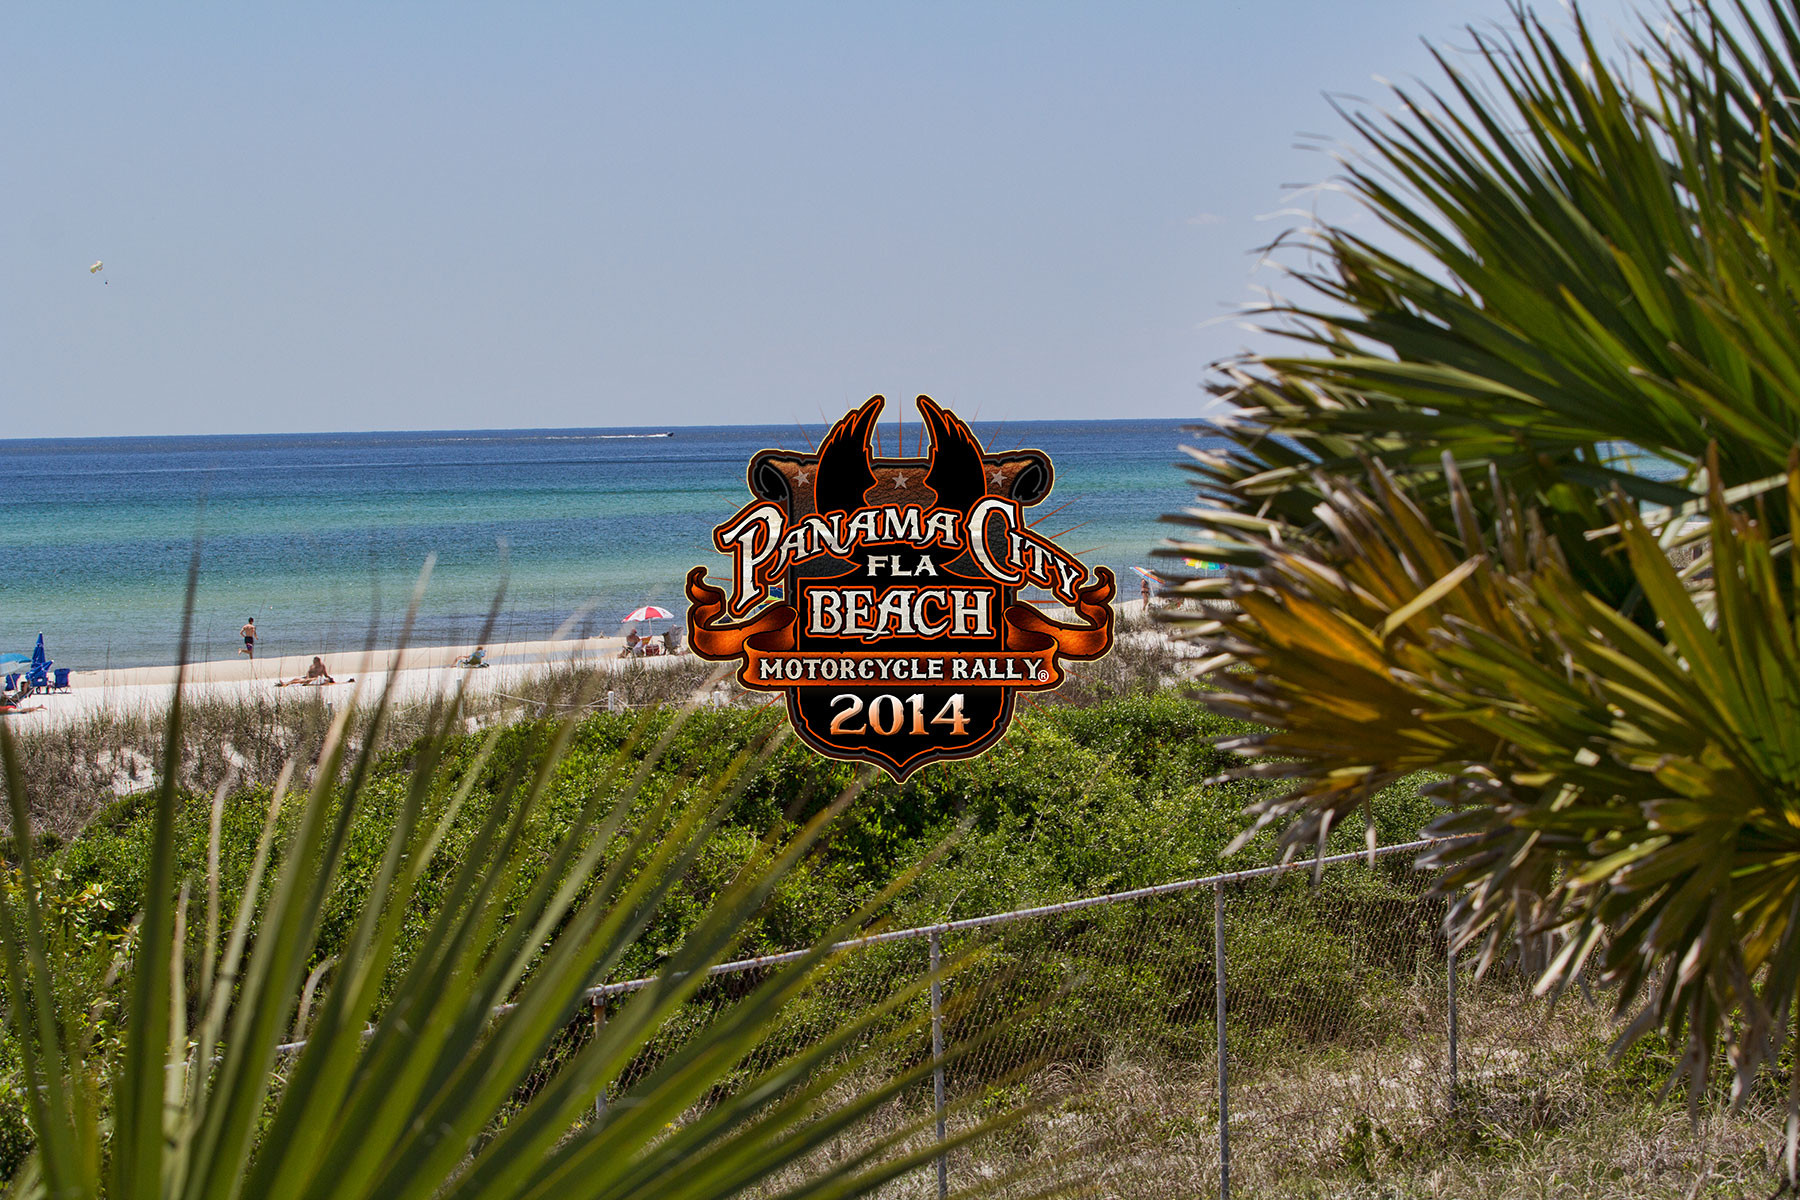 Motorcycle Rally Photos | Panama City Beach Motorcycle Rally® | 2014 Event Photos